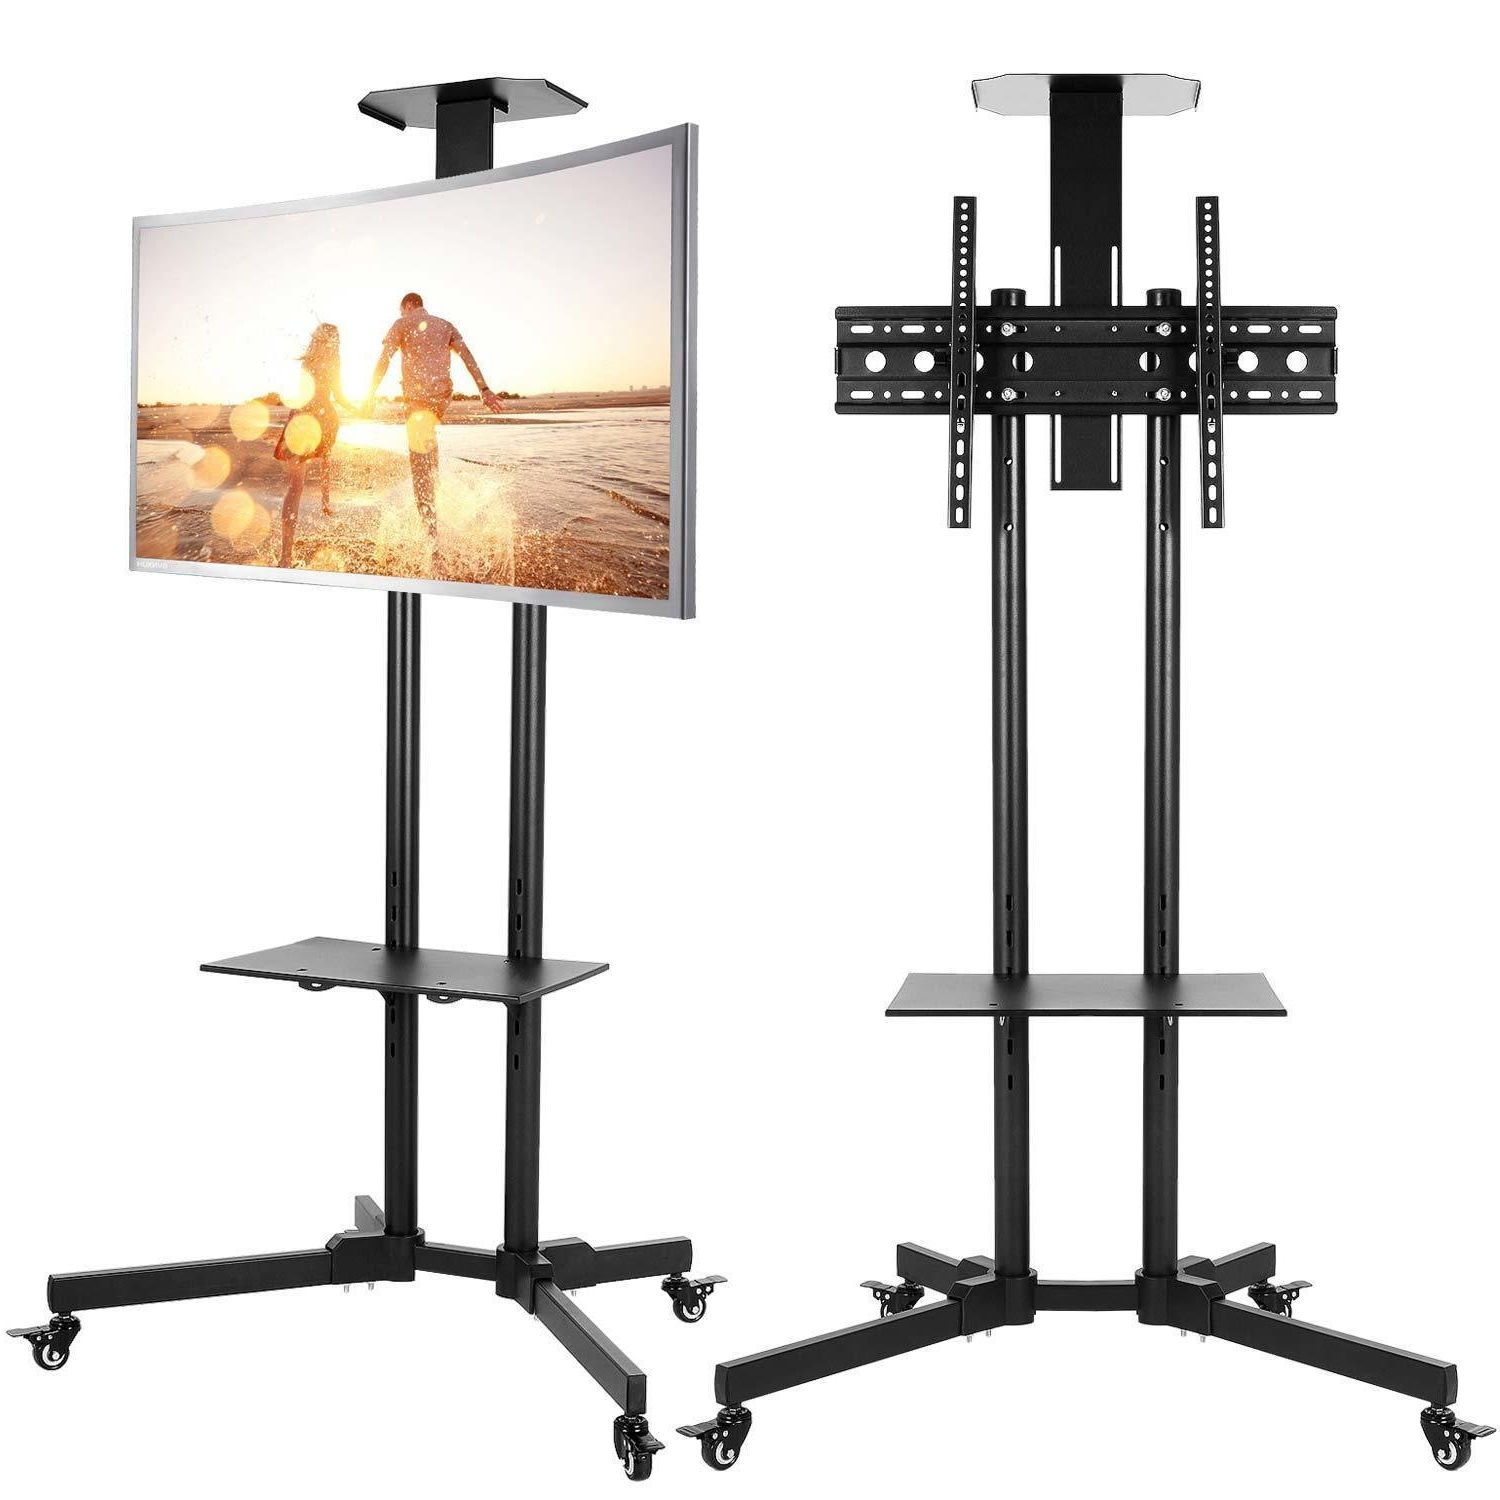 Buy Portable Tv Stand With Wheels For Lcd, Plasma Or Led Regarding Mount Factory Rolling Tv Stands (View 3 of 20)